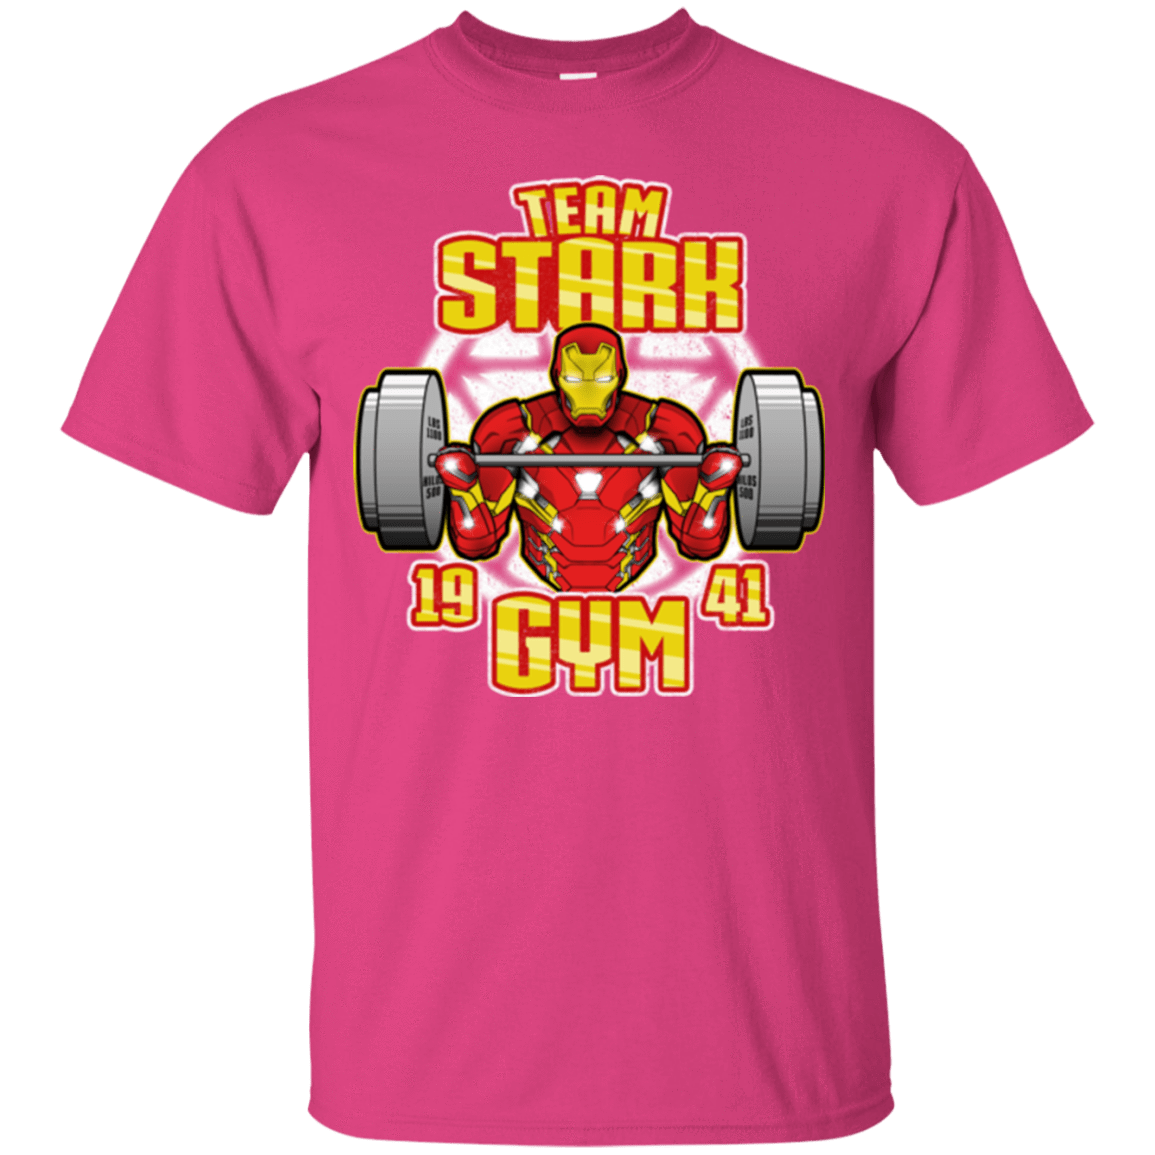 T-Shirts Heliconia / Small Team Stark Gym T-Shirt